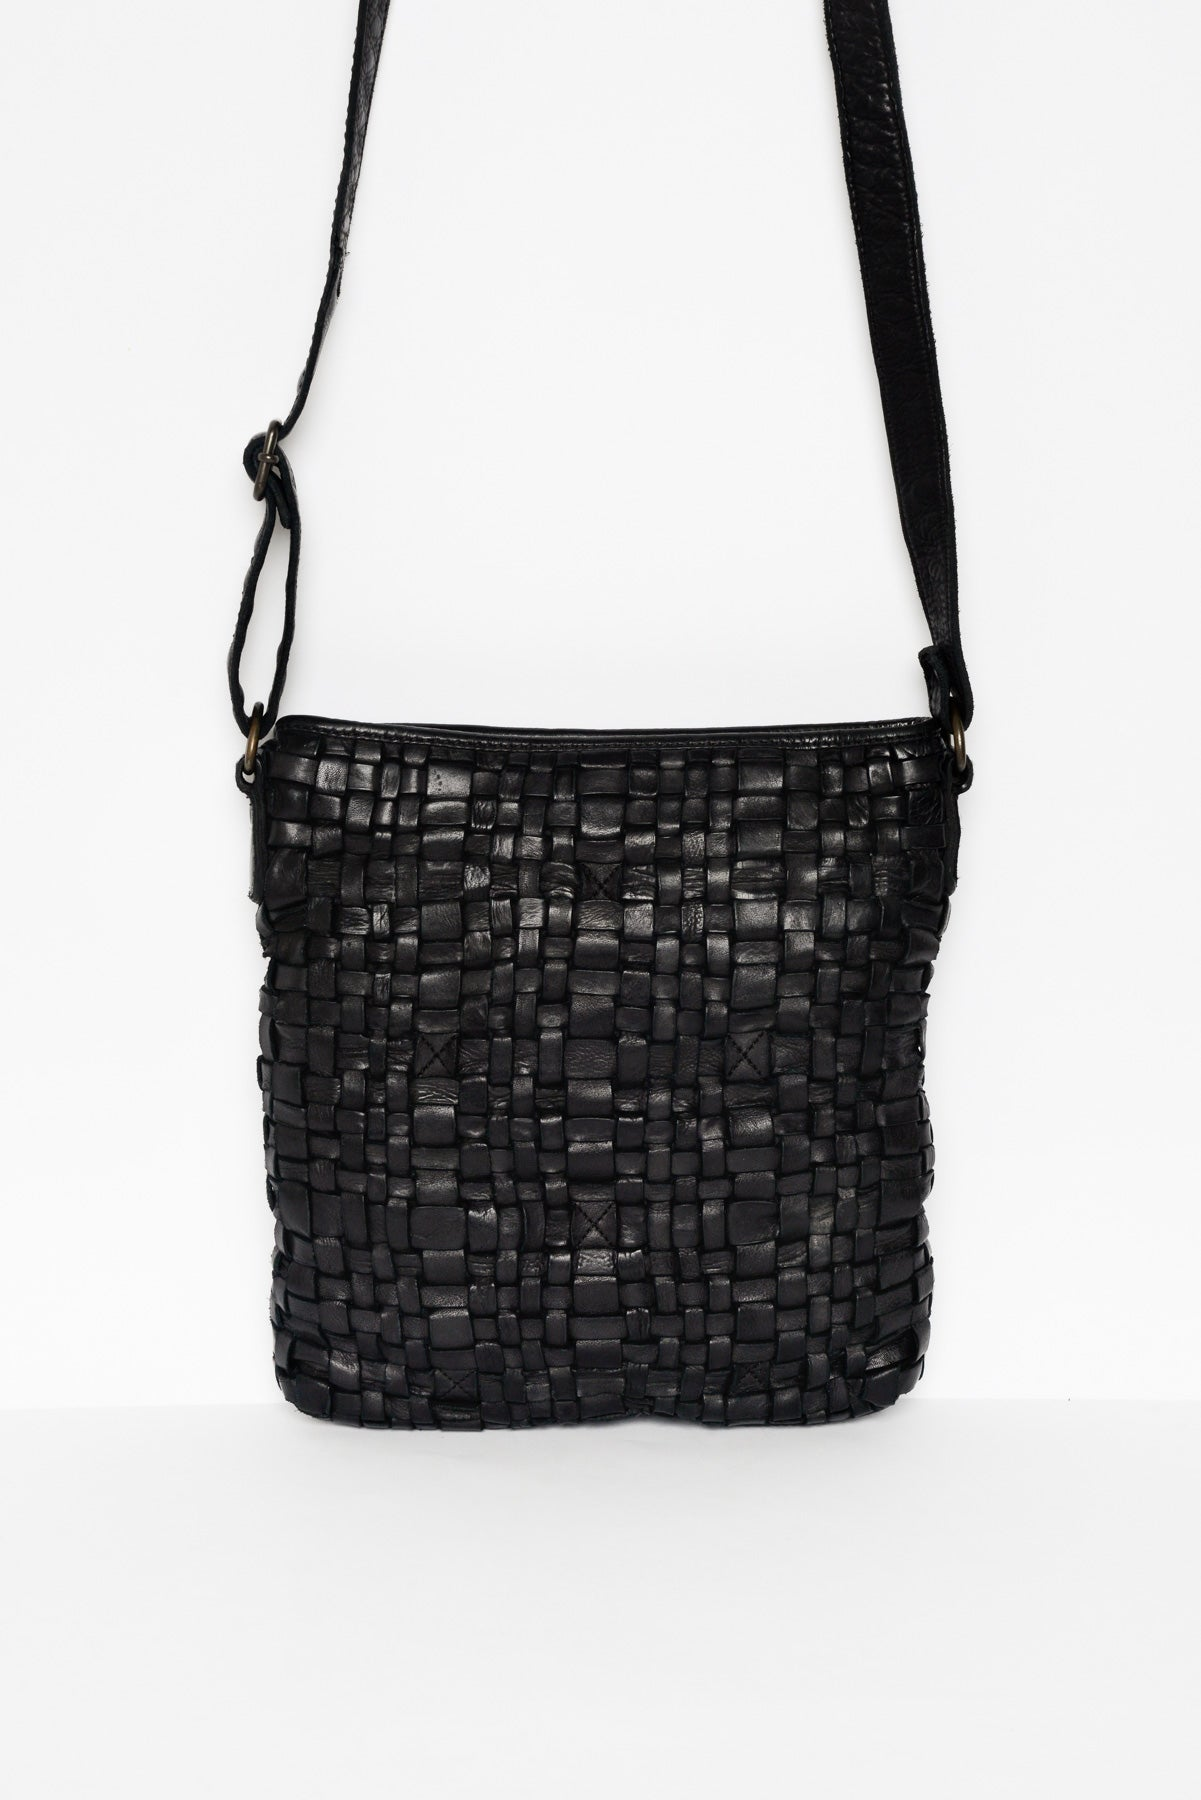 Zara Black Woven Leather Bag - Blue Bungalow